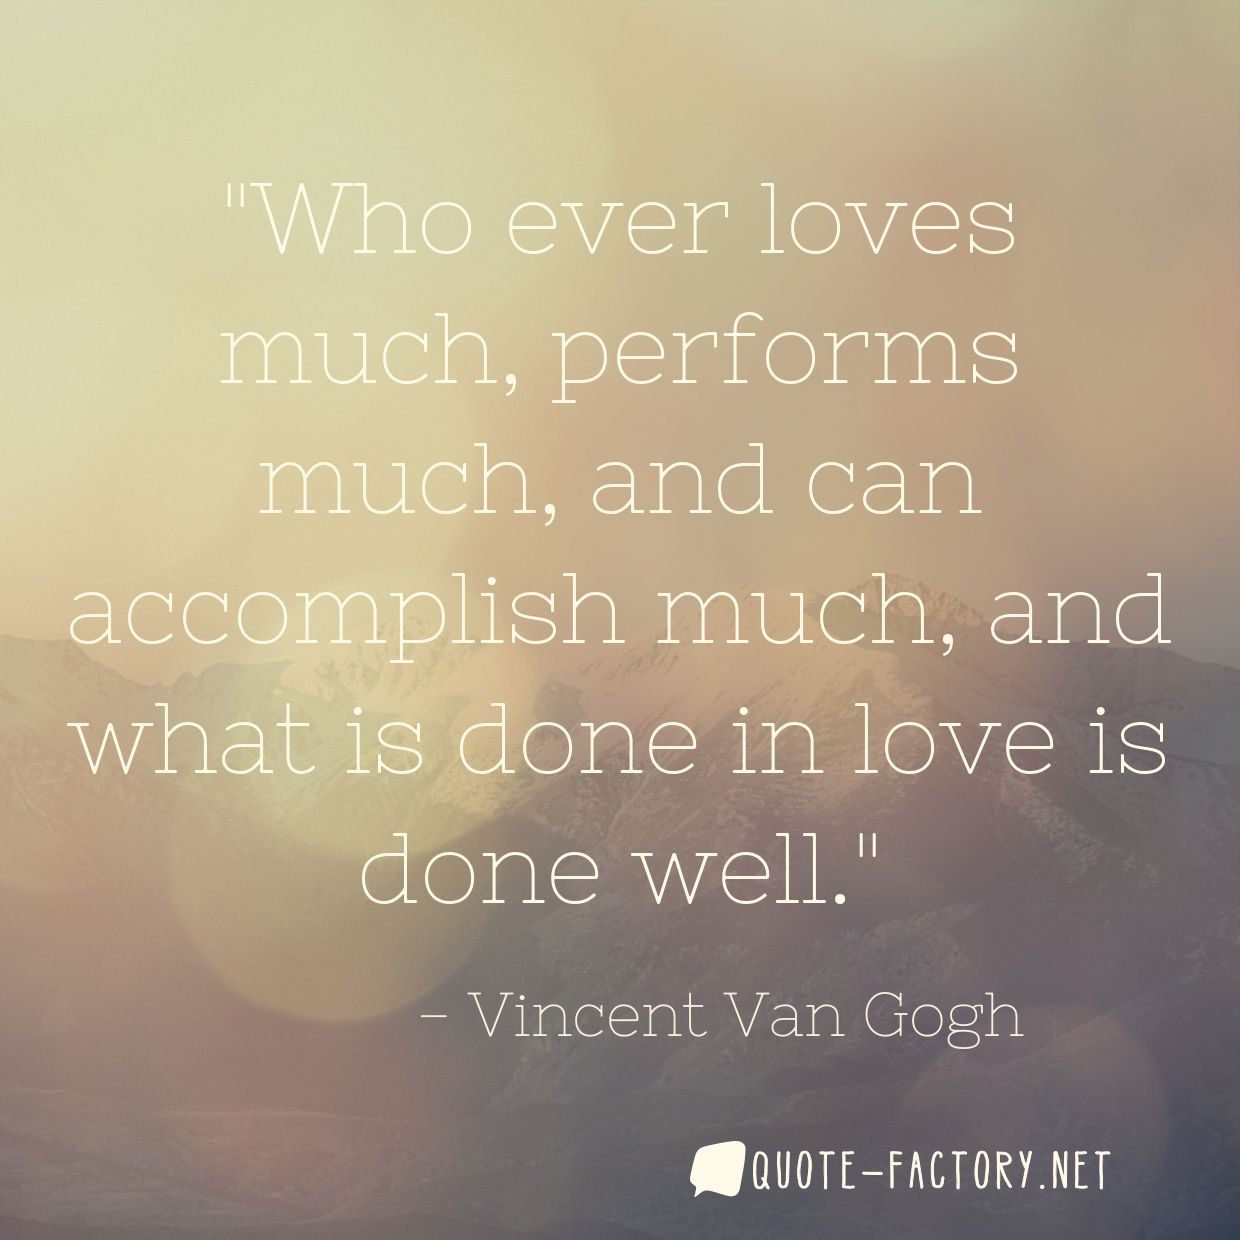 Who ever loves much, performs much, and can accomplish much, and what is done in love is done well.